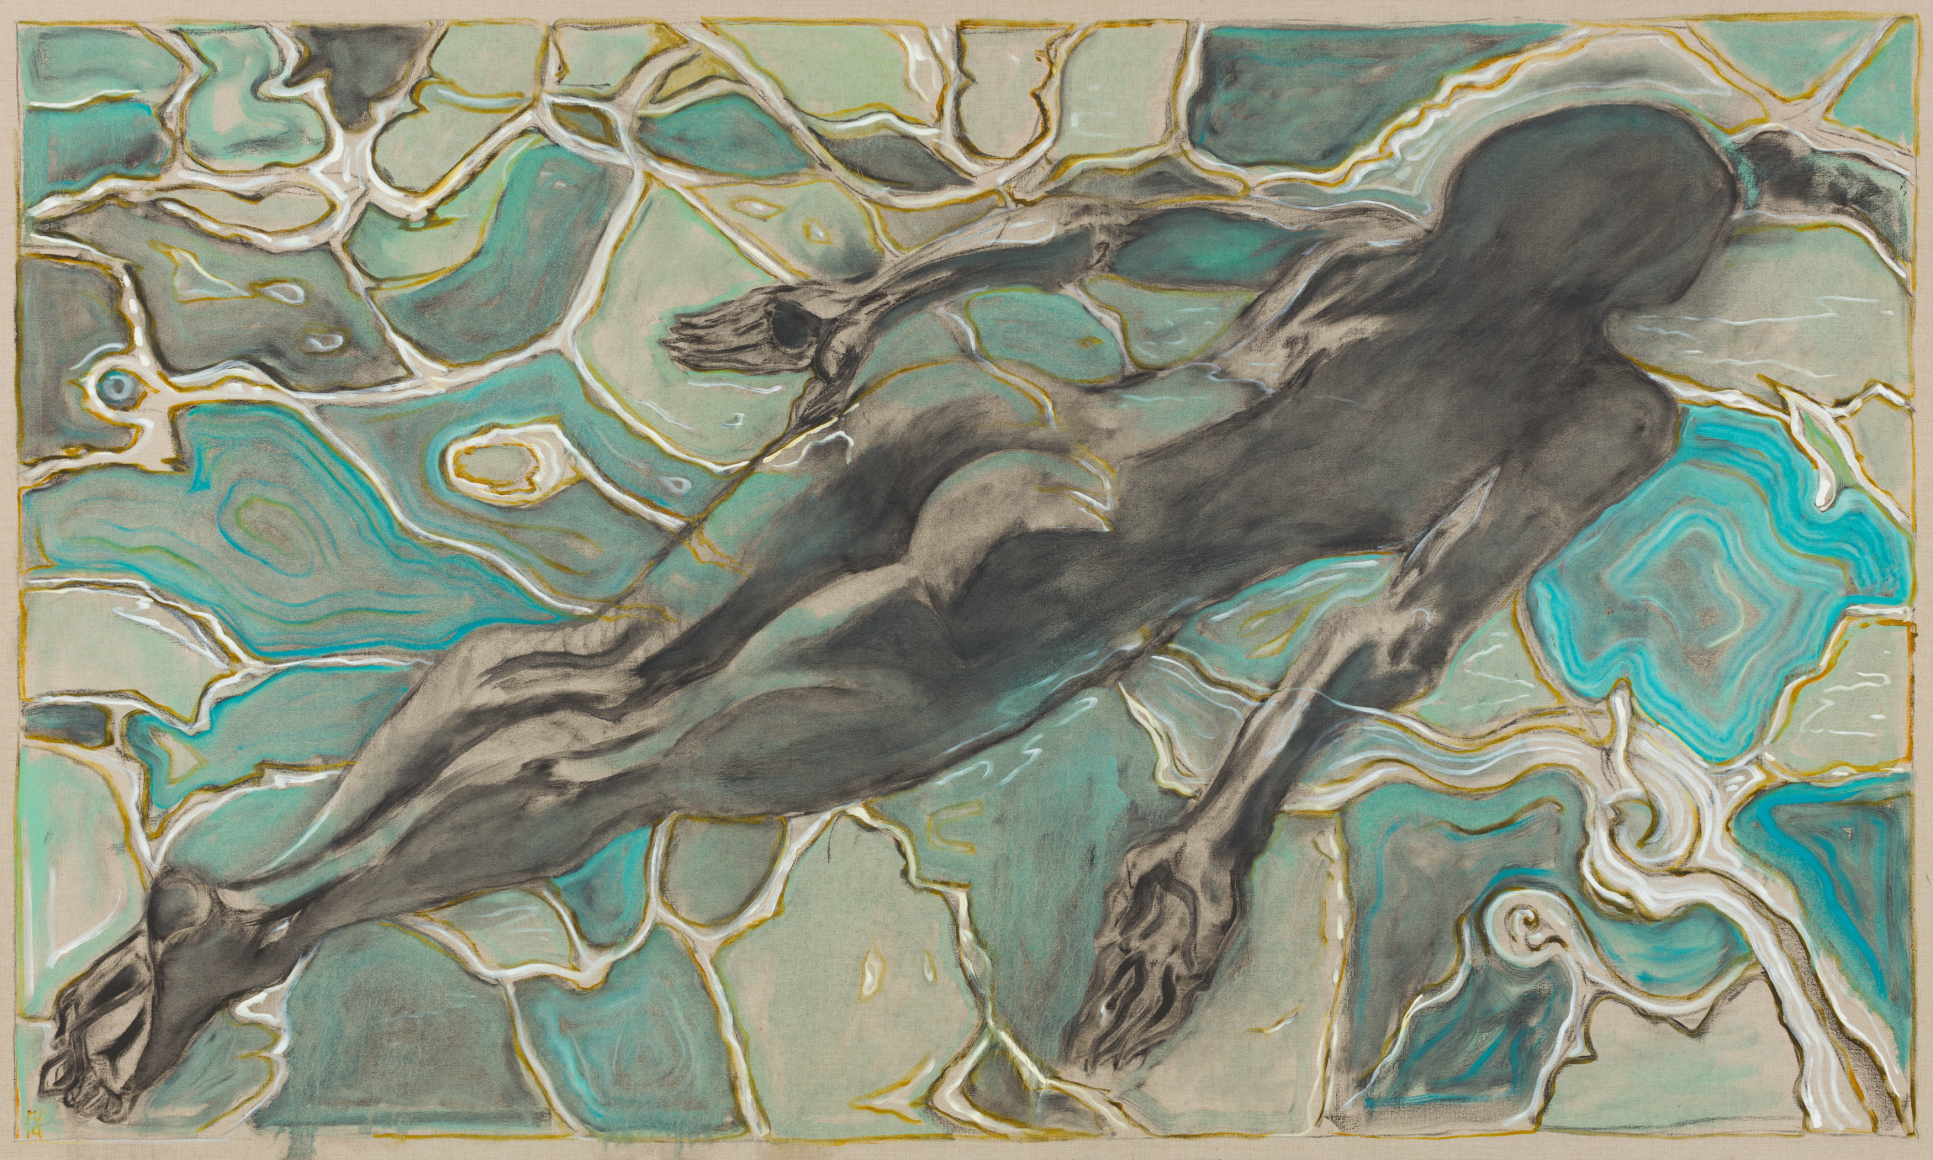 BILLY CHILDISH, swimmer under water, 2019